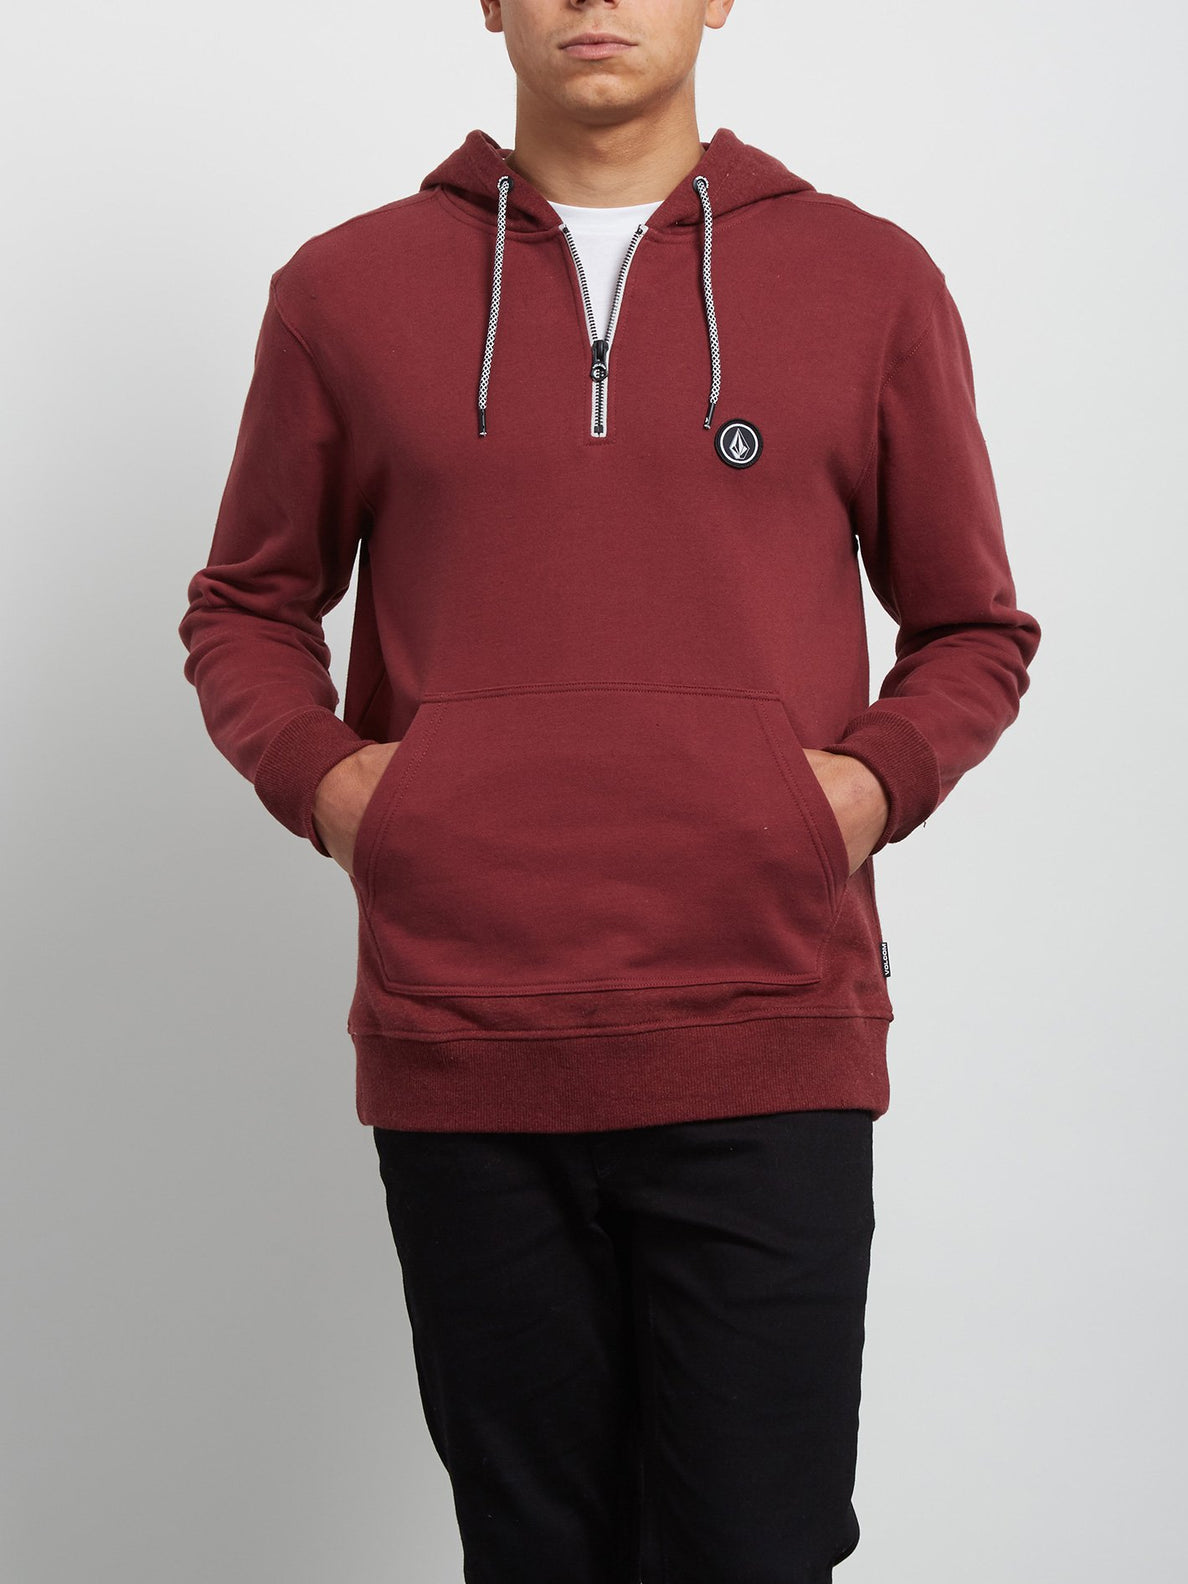 Milton Hooded Pullover - Crimson